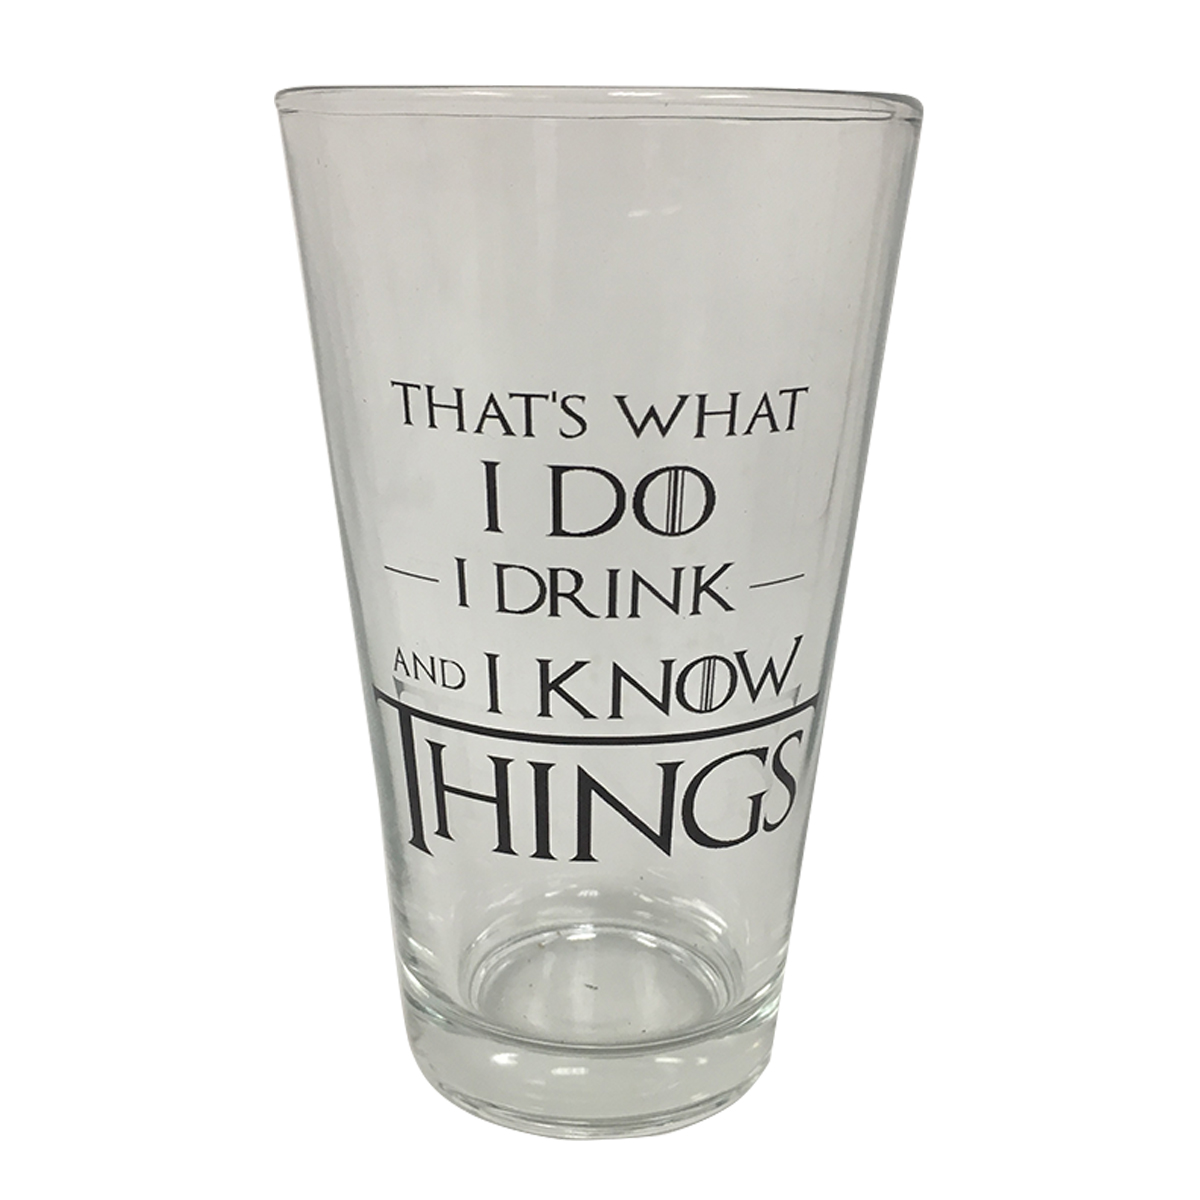 That's What I Do I Drink And I Know Things Pint Glass Game Of Thrones Cup Tyrion